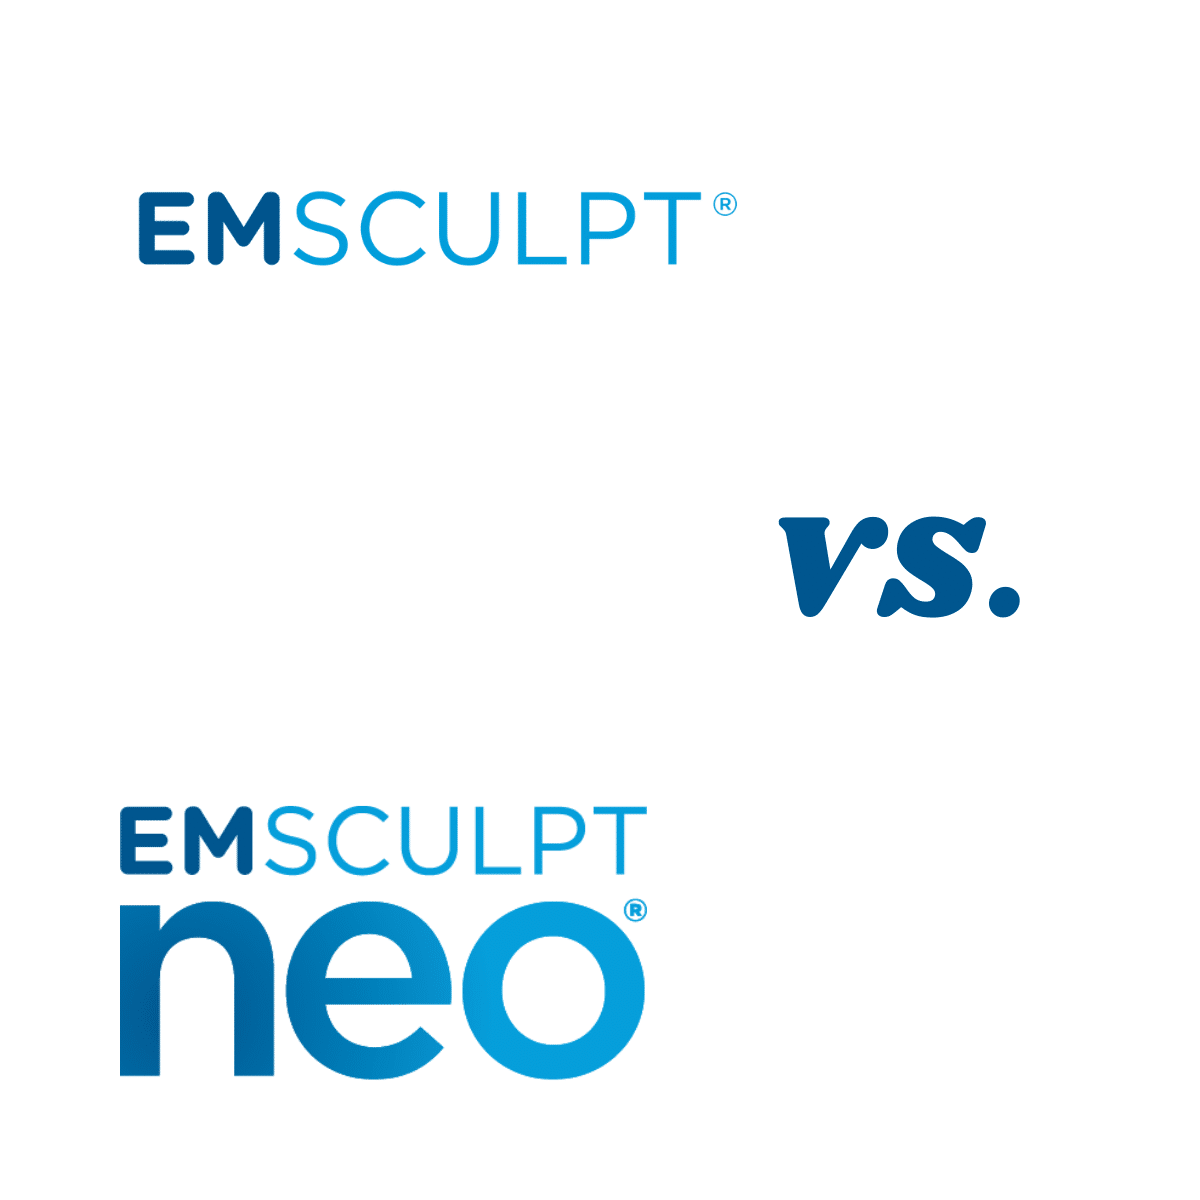 Emsculpt vs. Emsculpt NEO: Which treatment is right for you?